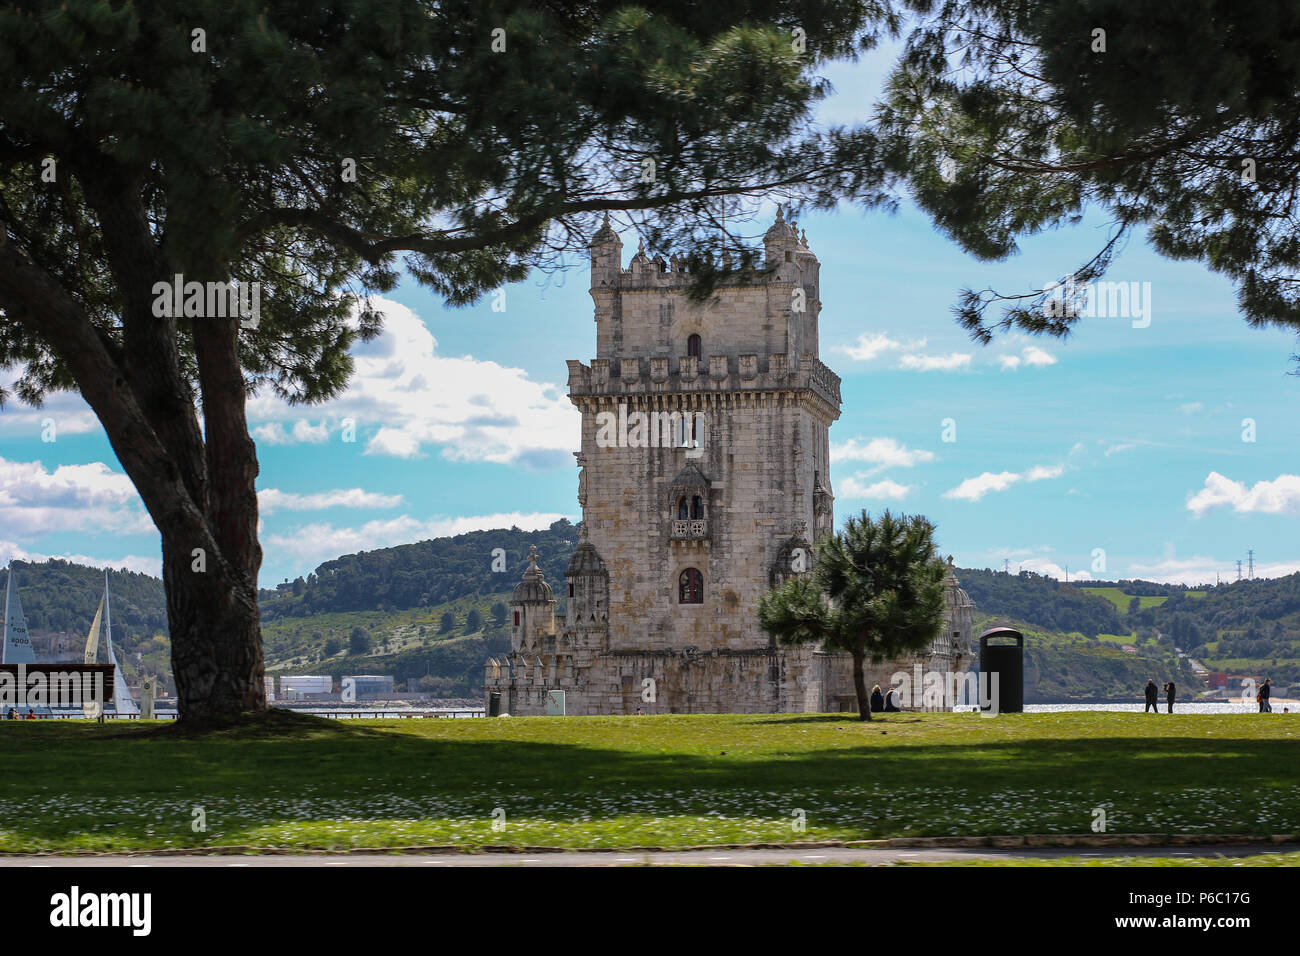 Belem Tower - Stock Image